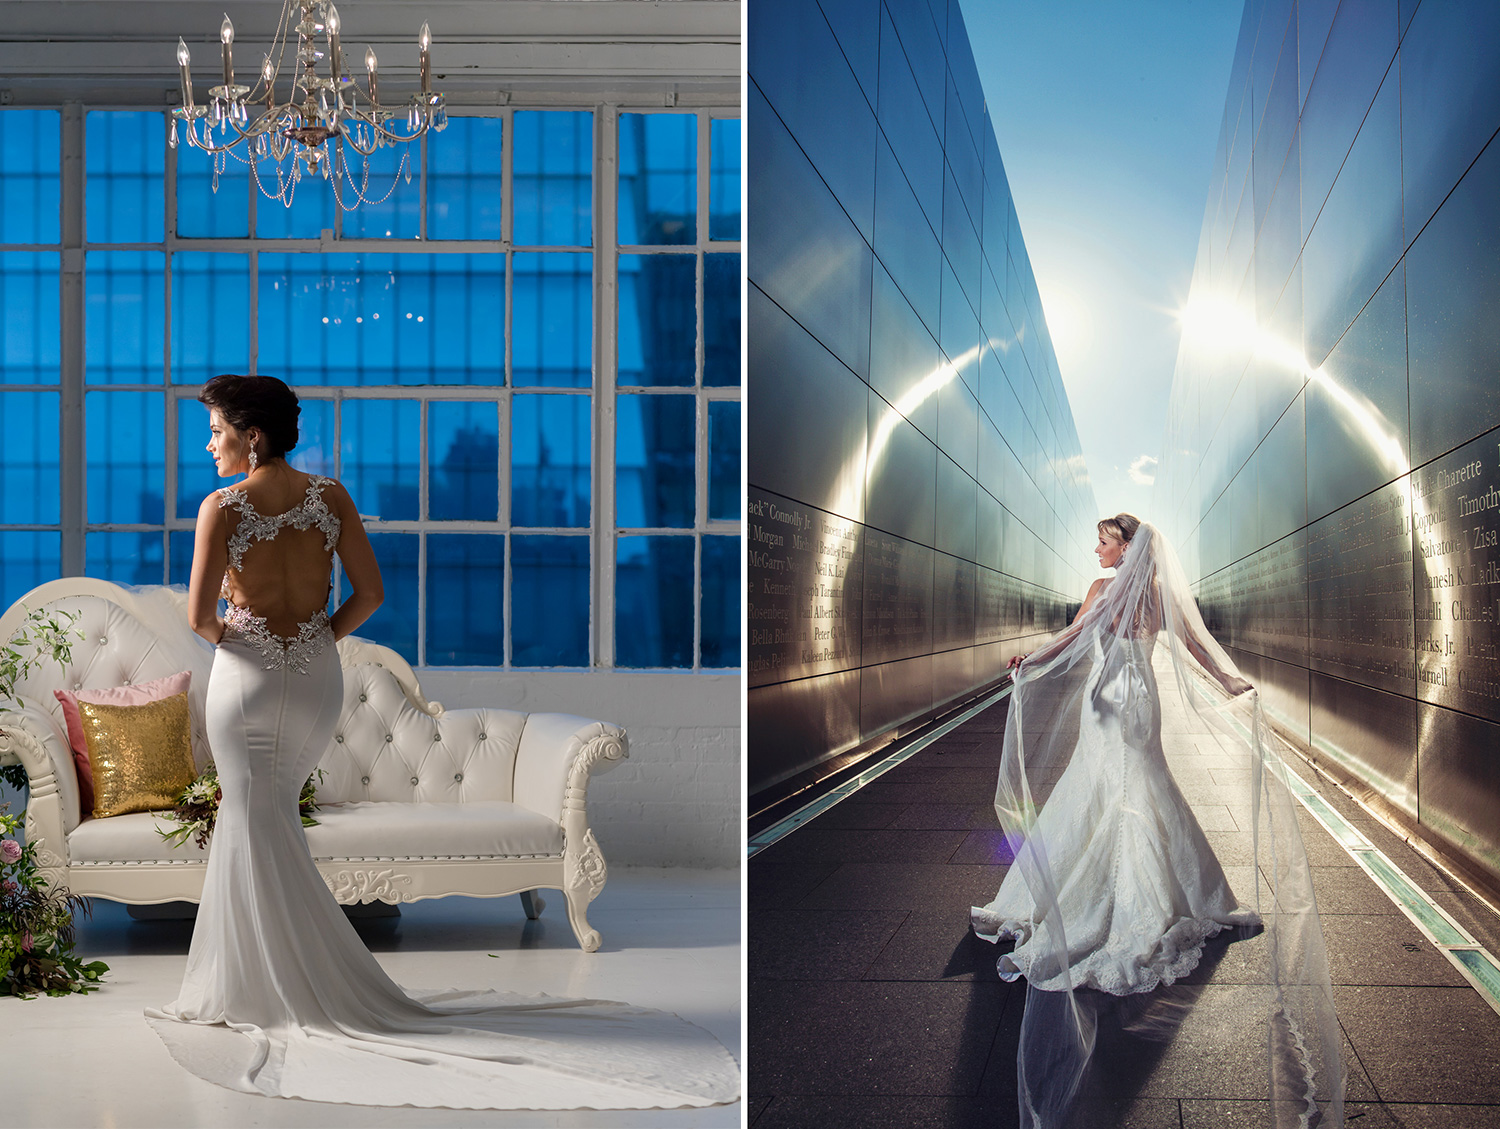 Canon Explorers of Light  – Q&A with Photographer Vanessa Joy. Two example wedding photos of brides.